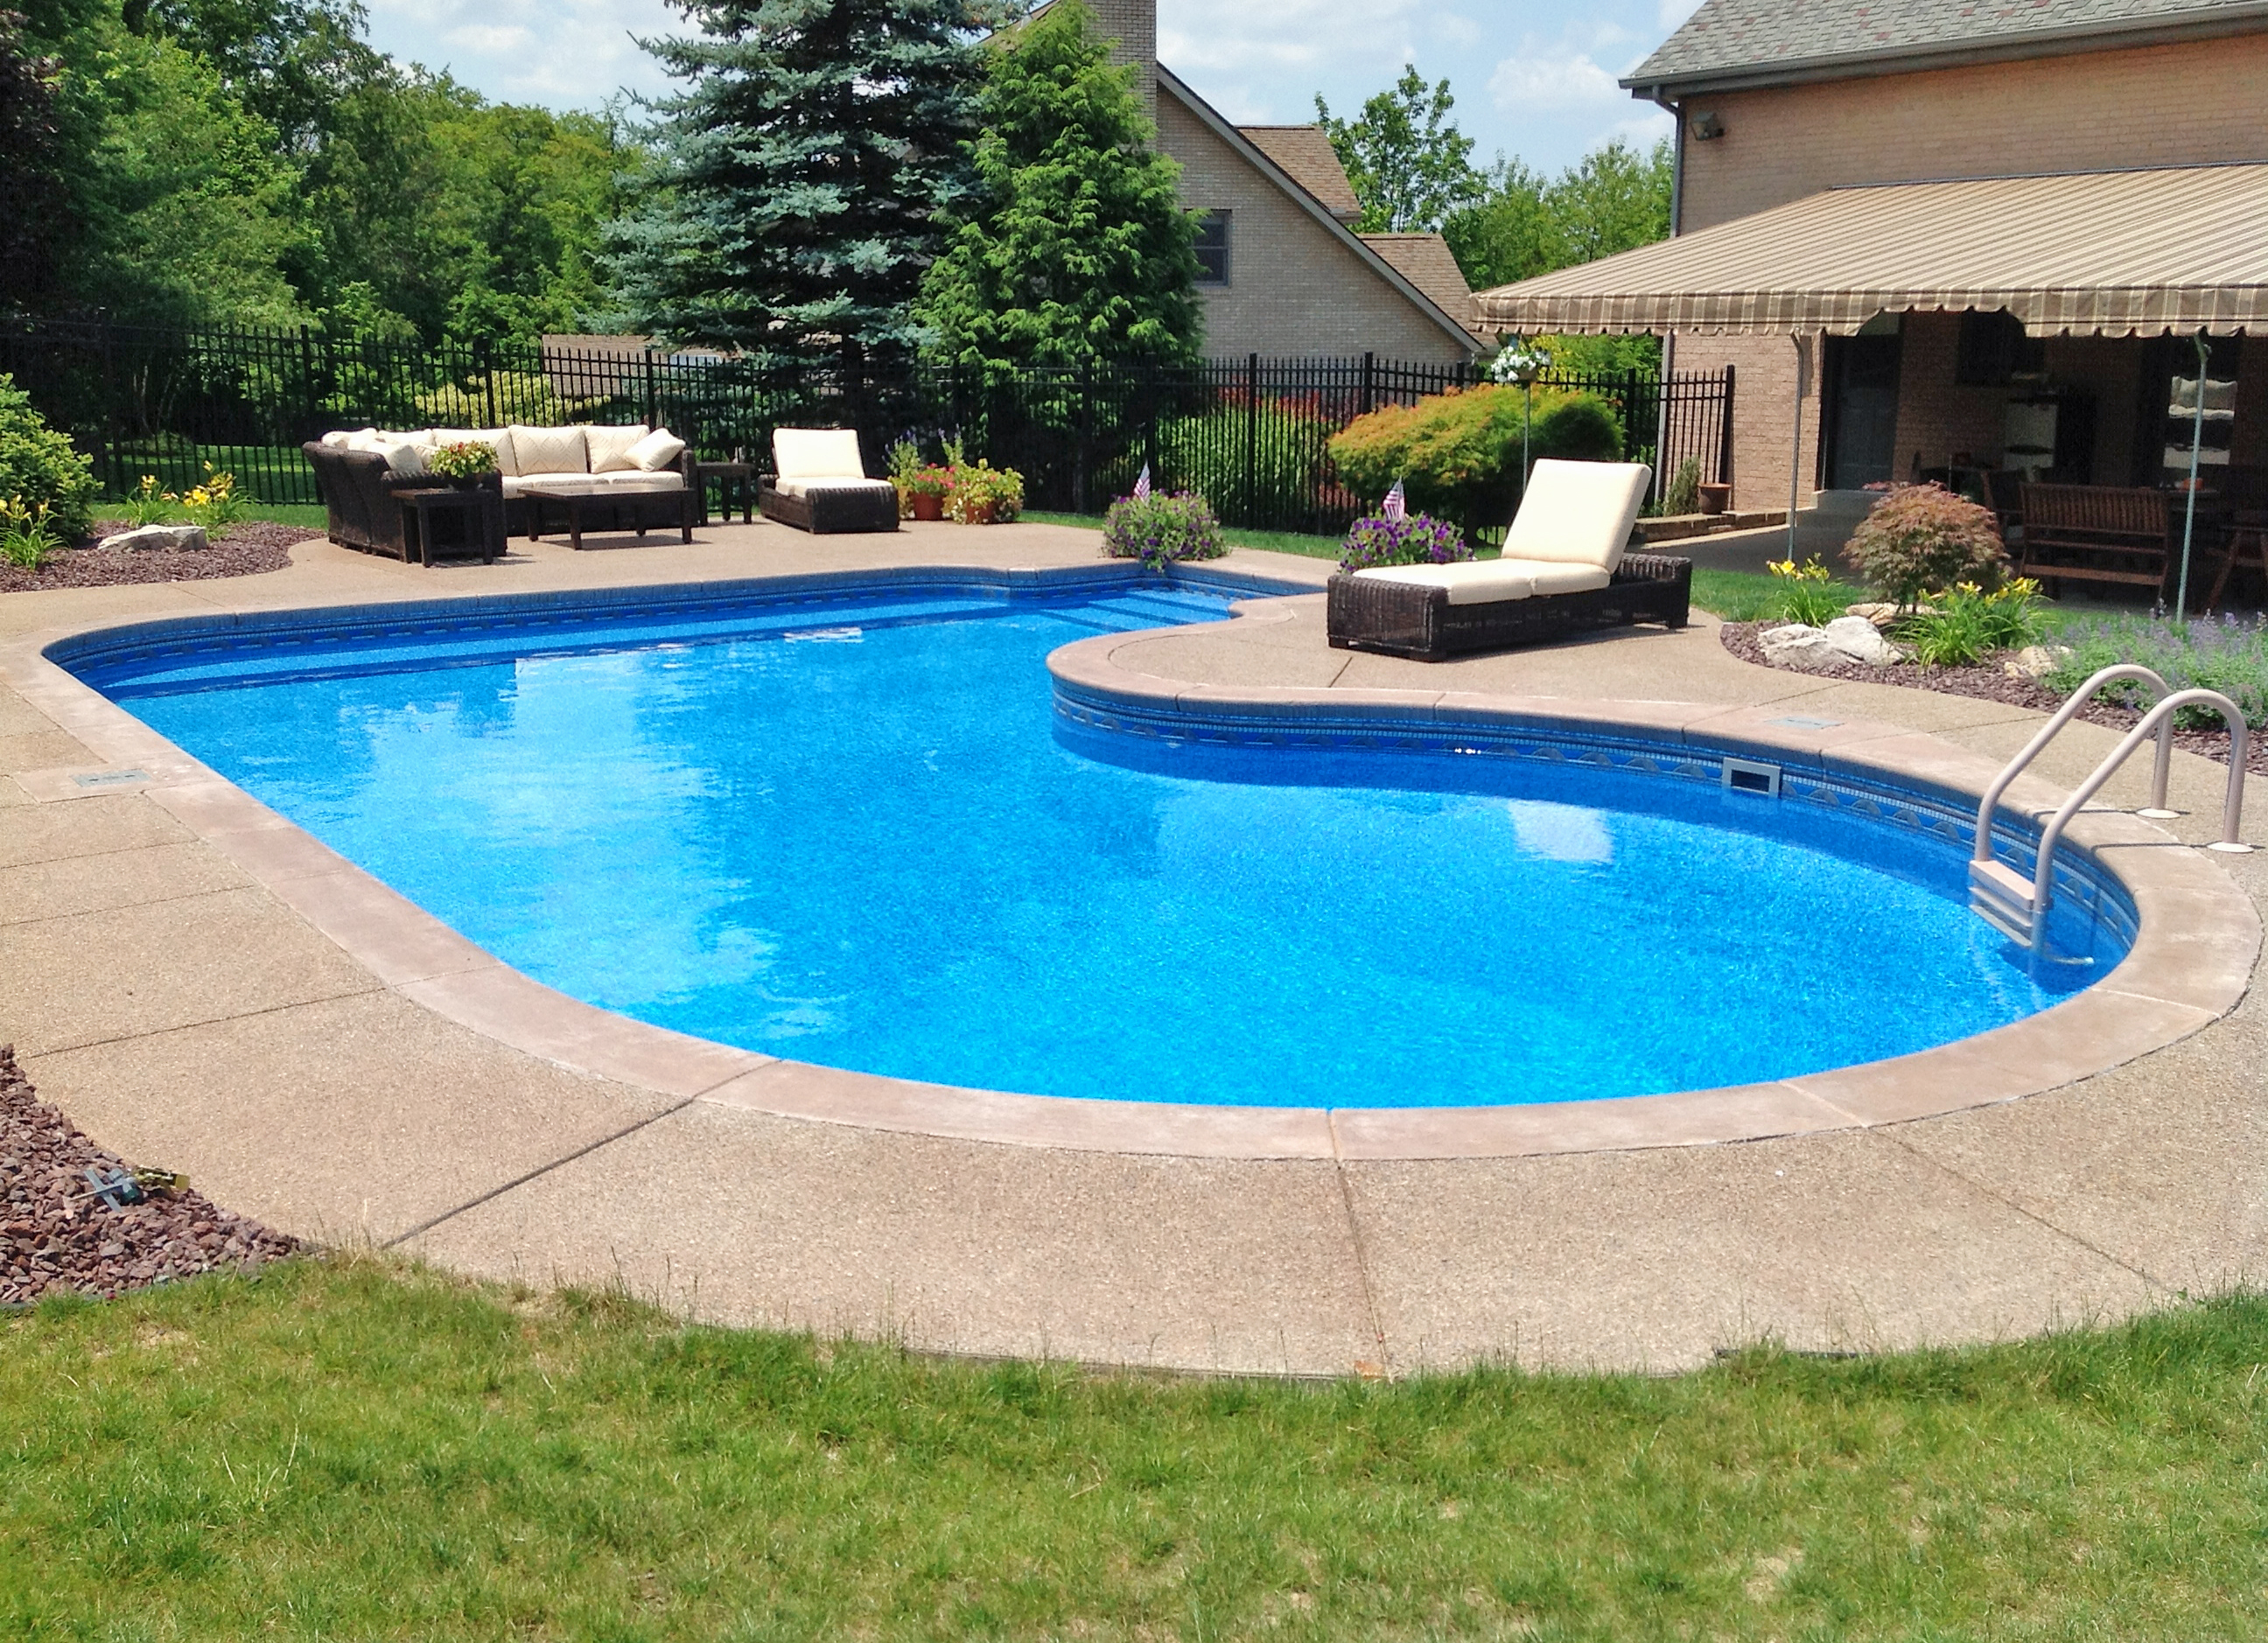 Gallery for Pool design mcmurray pa